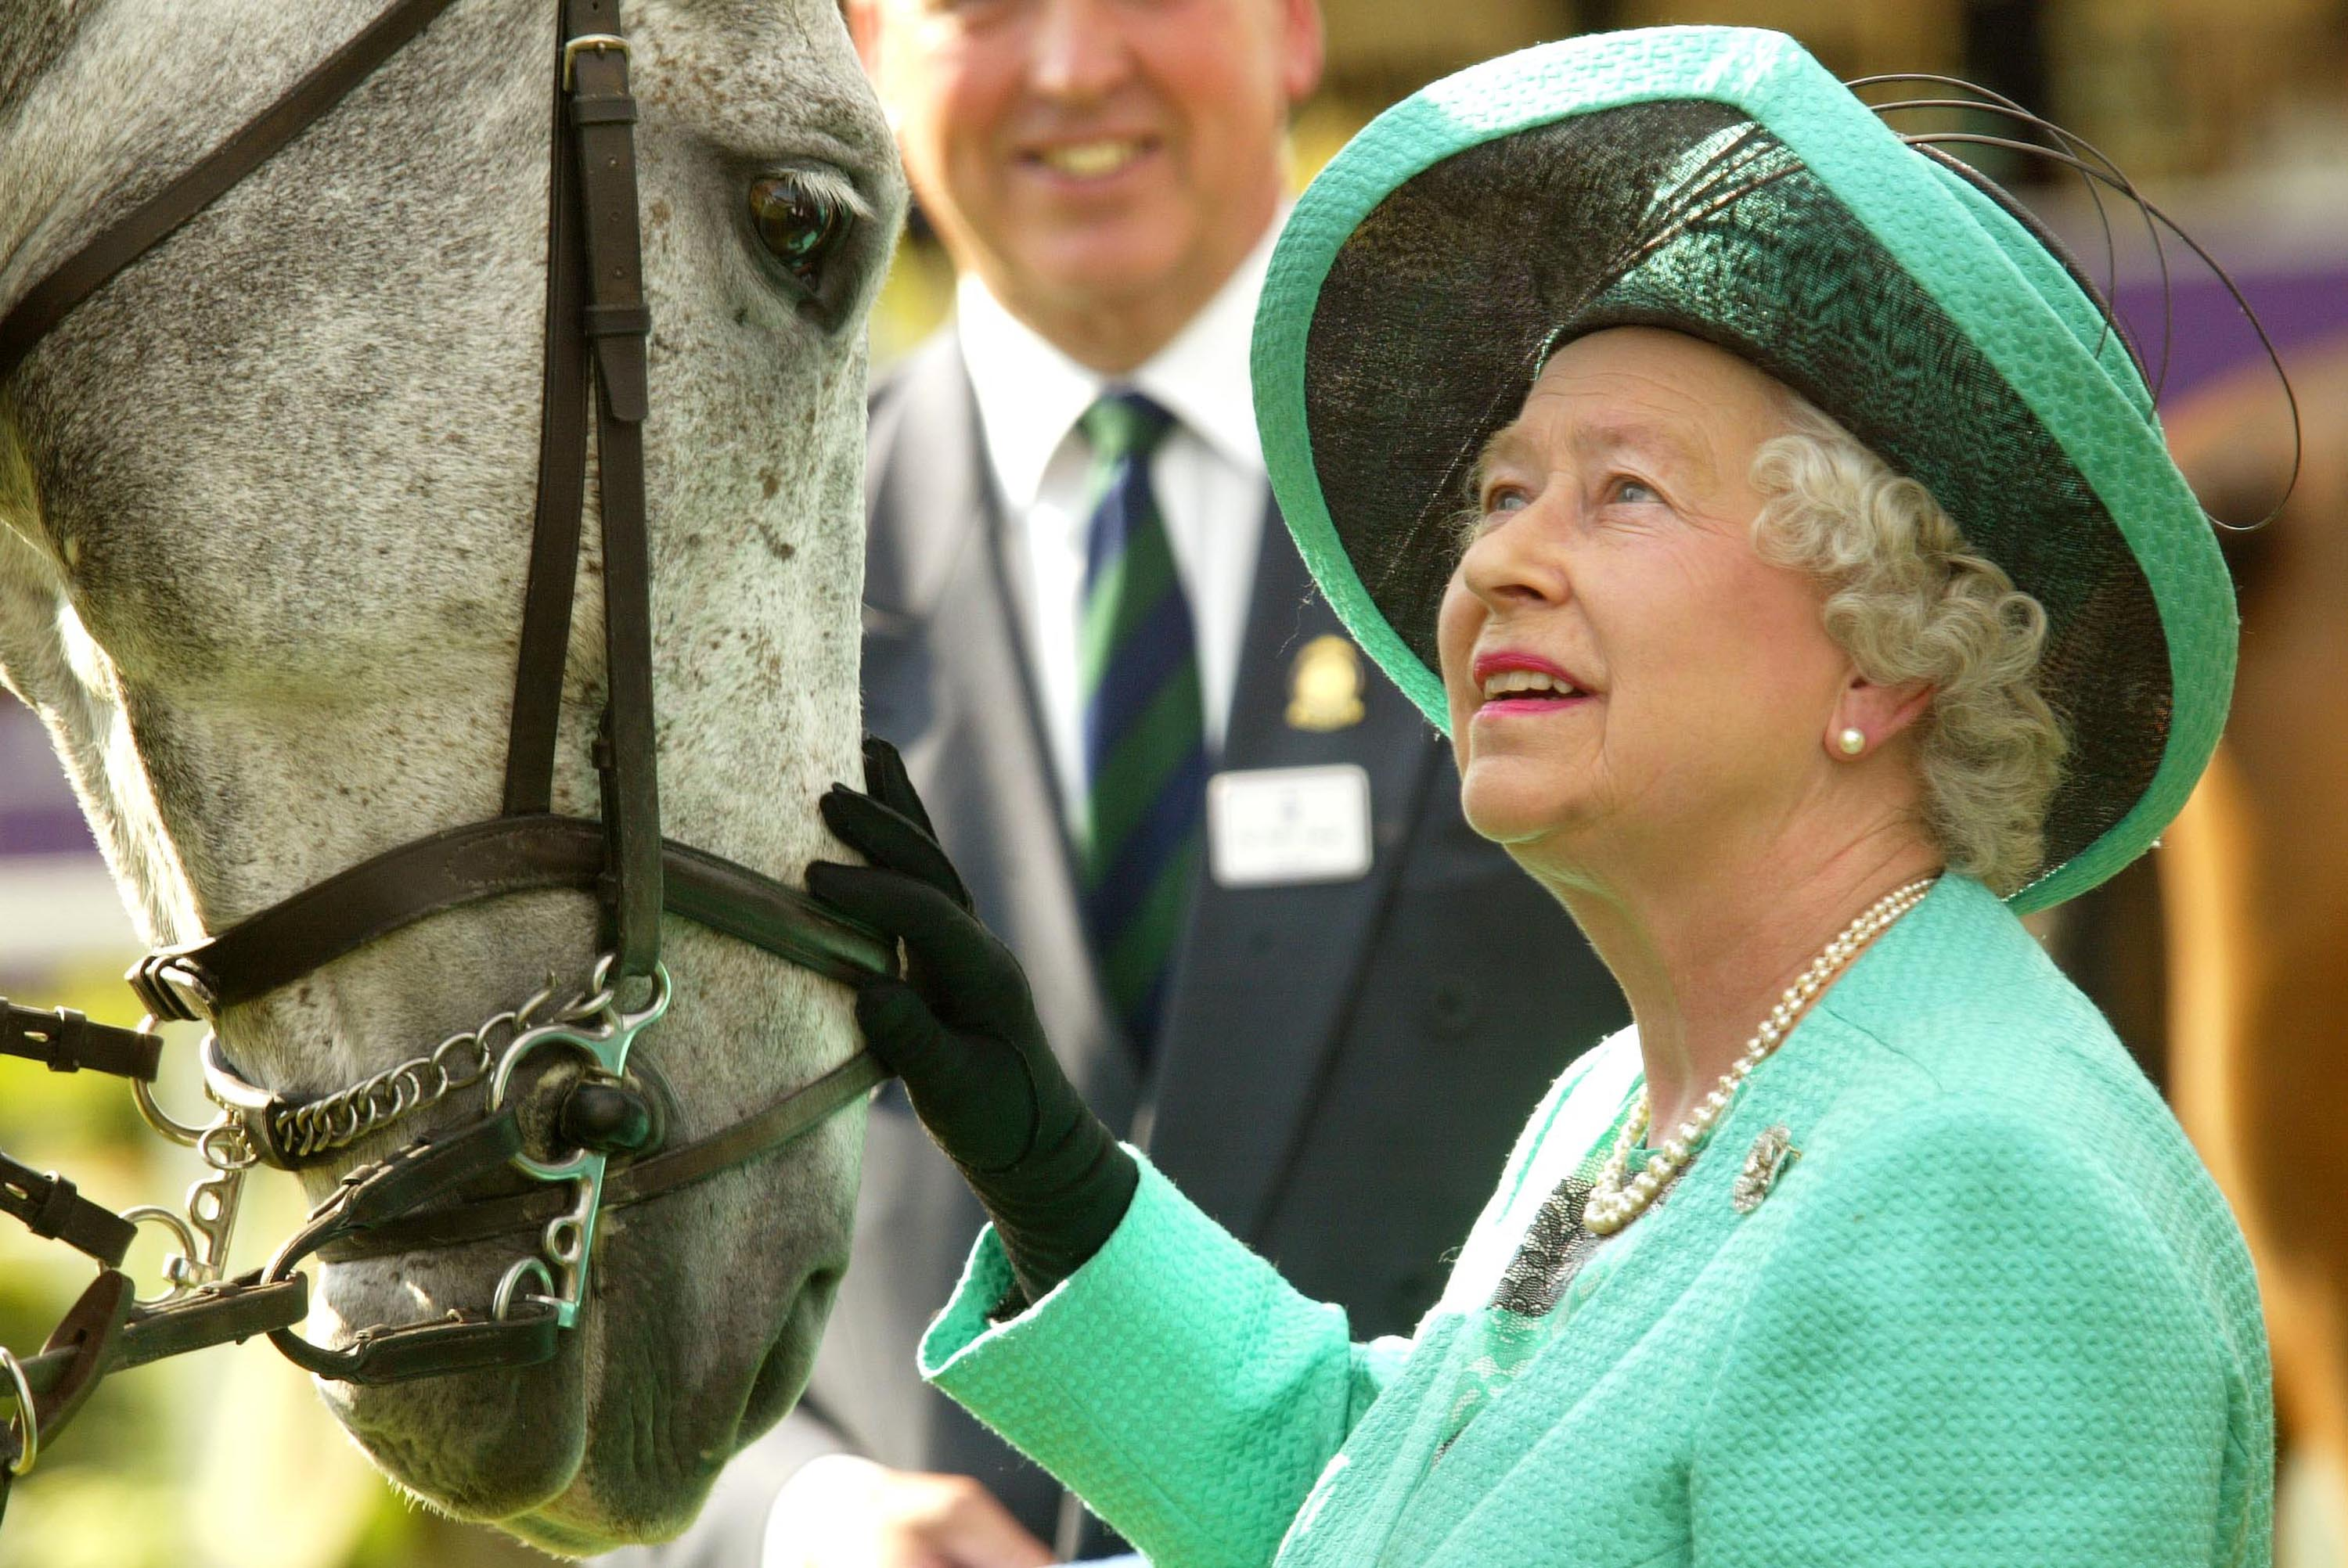 The Queen and His Royal Highness The Duke of Edinburgh.